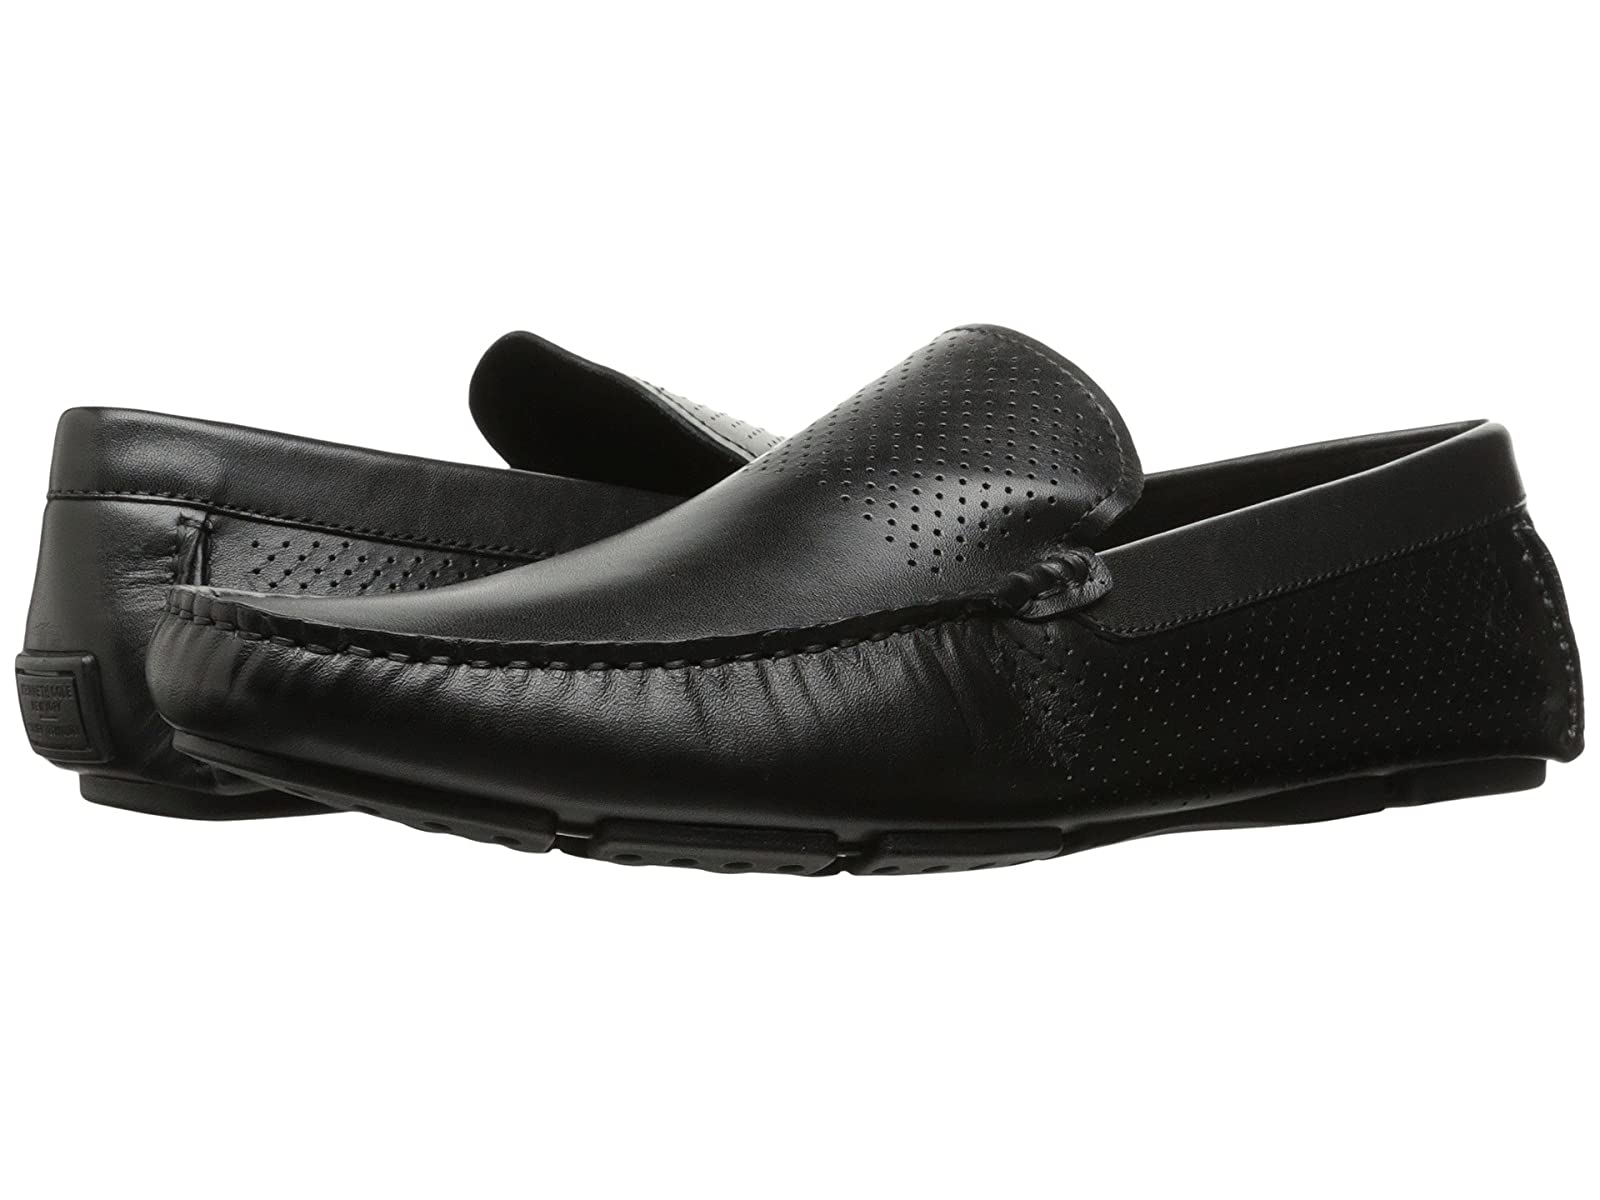 Kenneth Cole New York Multi TaskCheap and distinctive eye-catching shoes